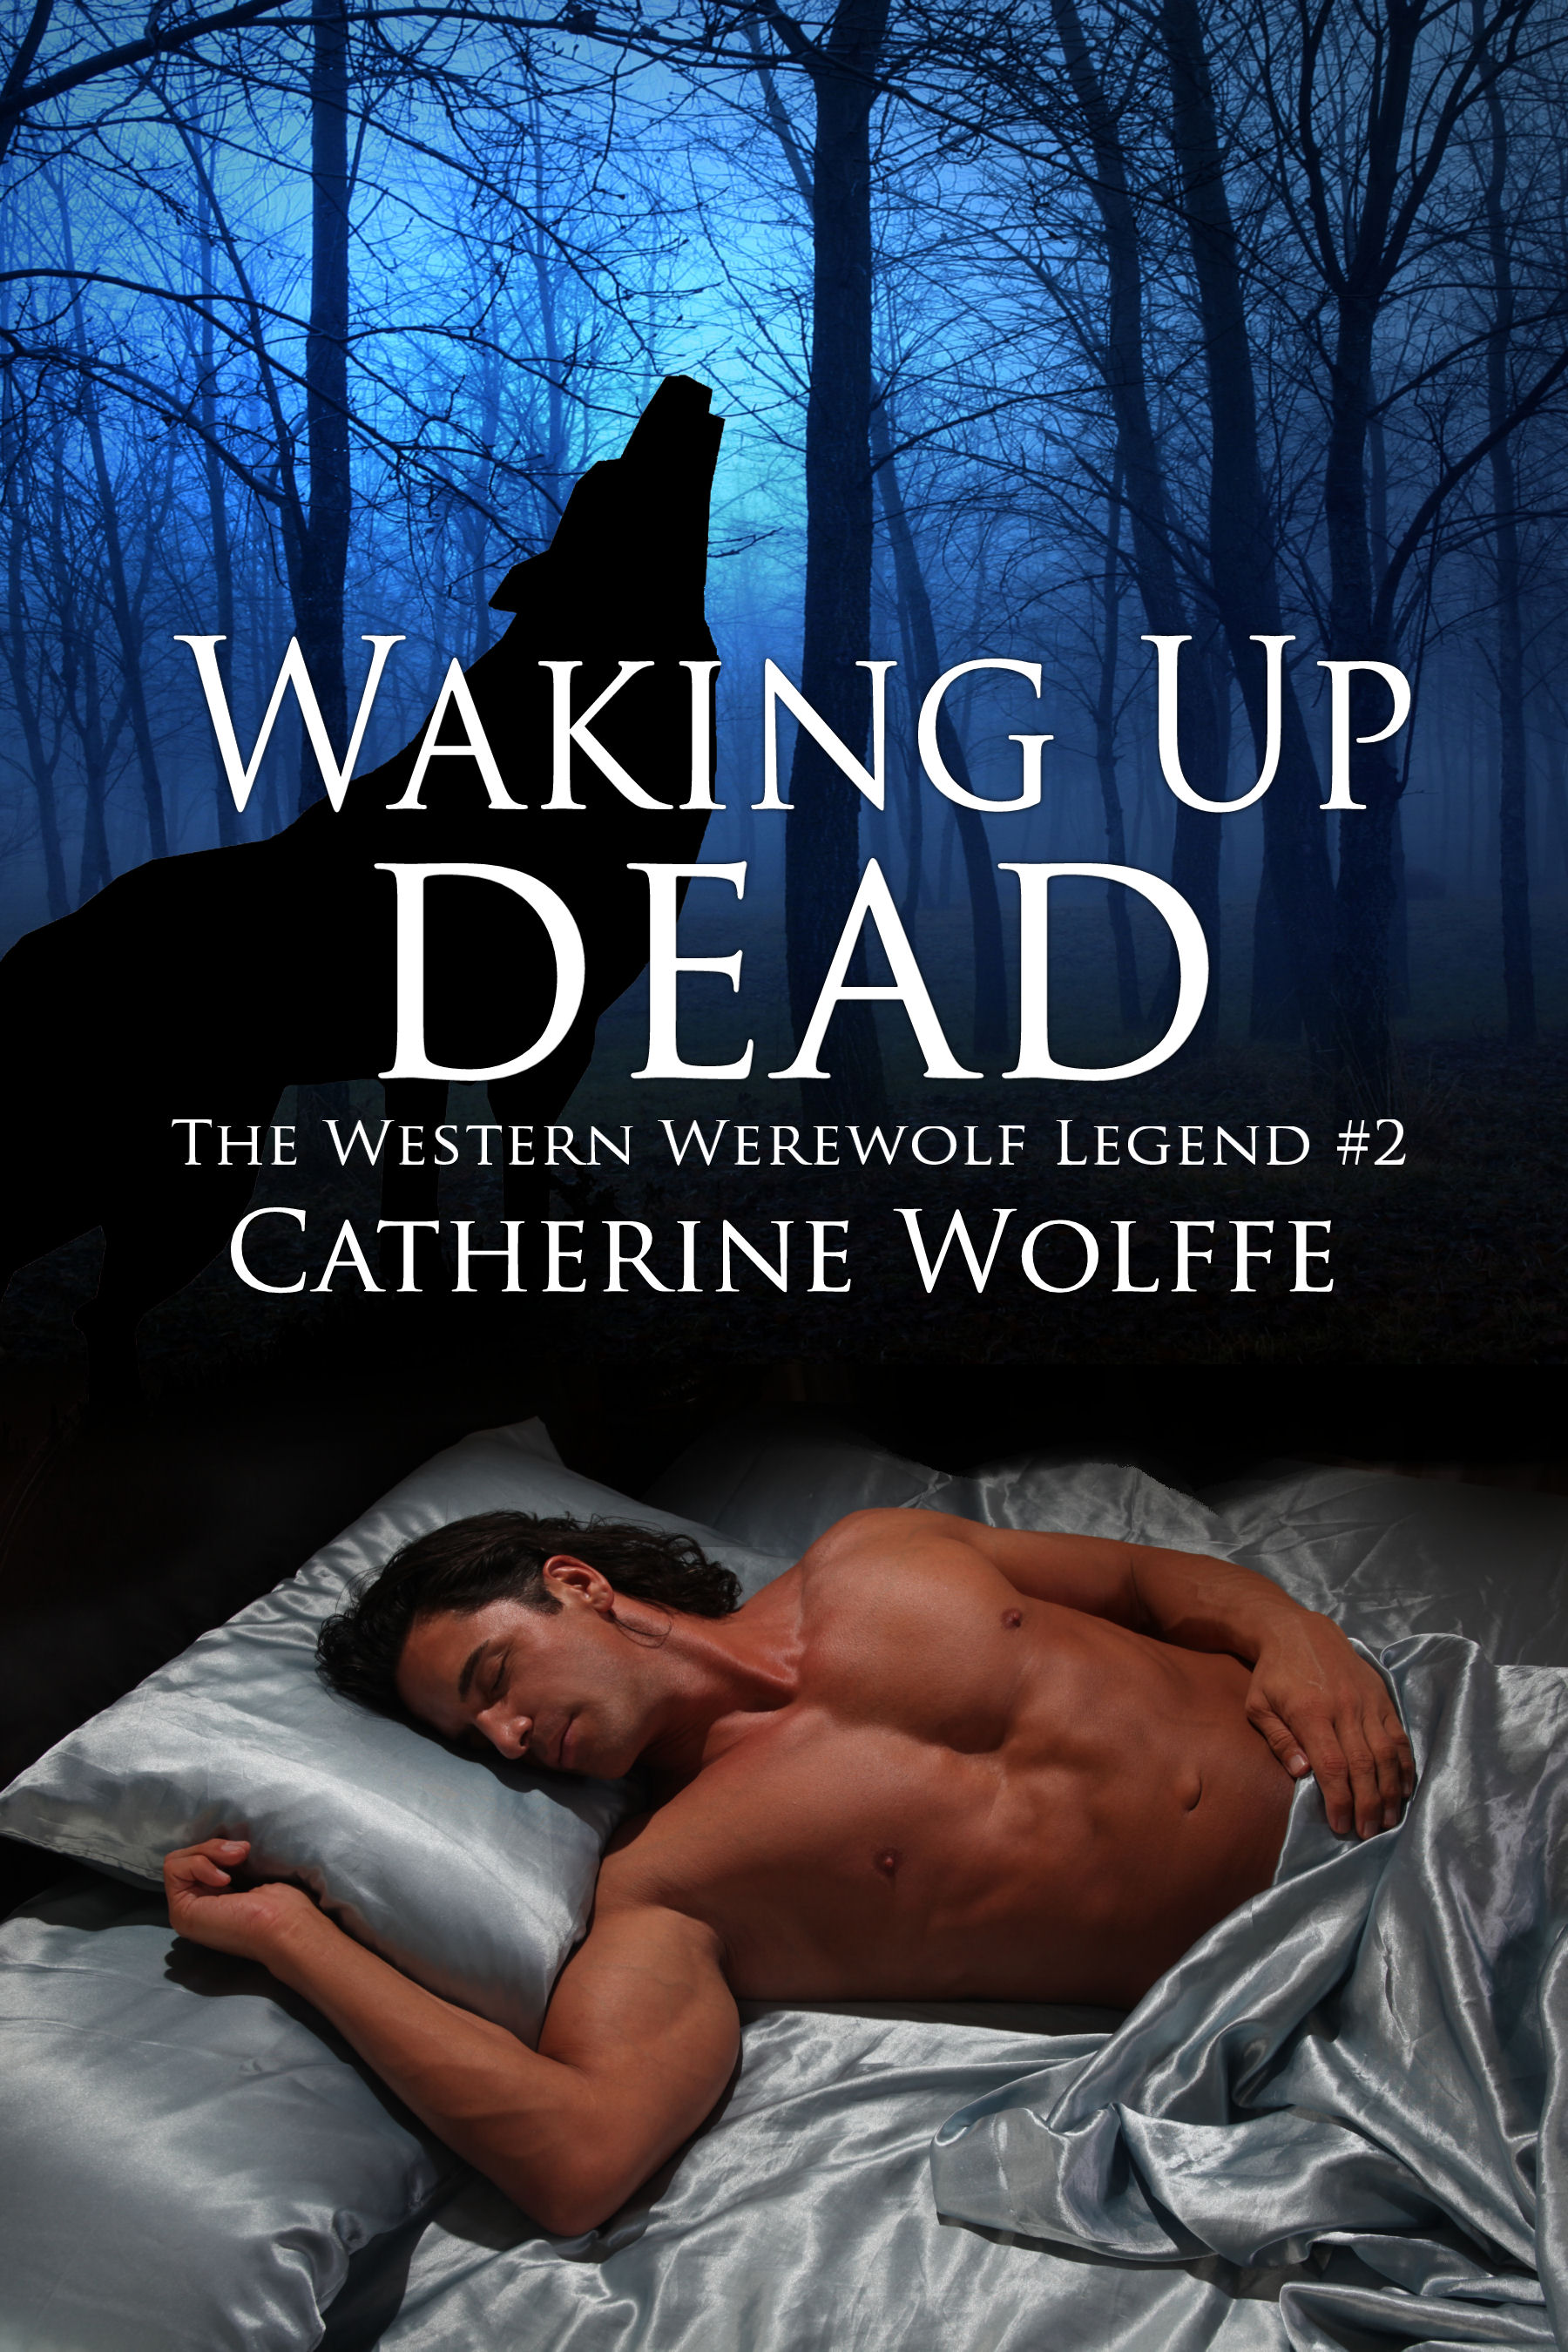 Check out Book 2 in the Western Werewolf Legend series, Waking Up Dead. Free at Amazon now!